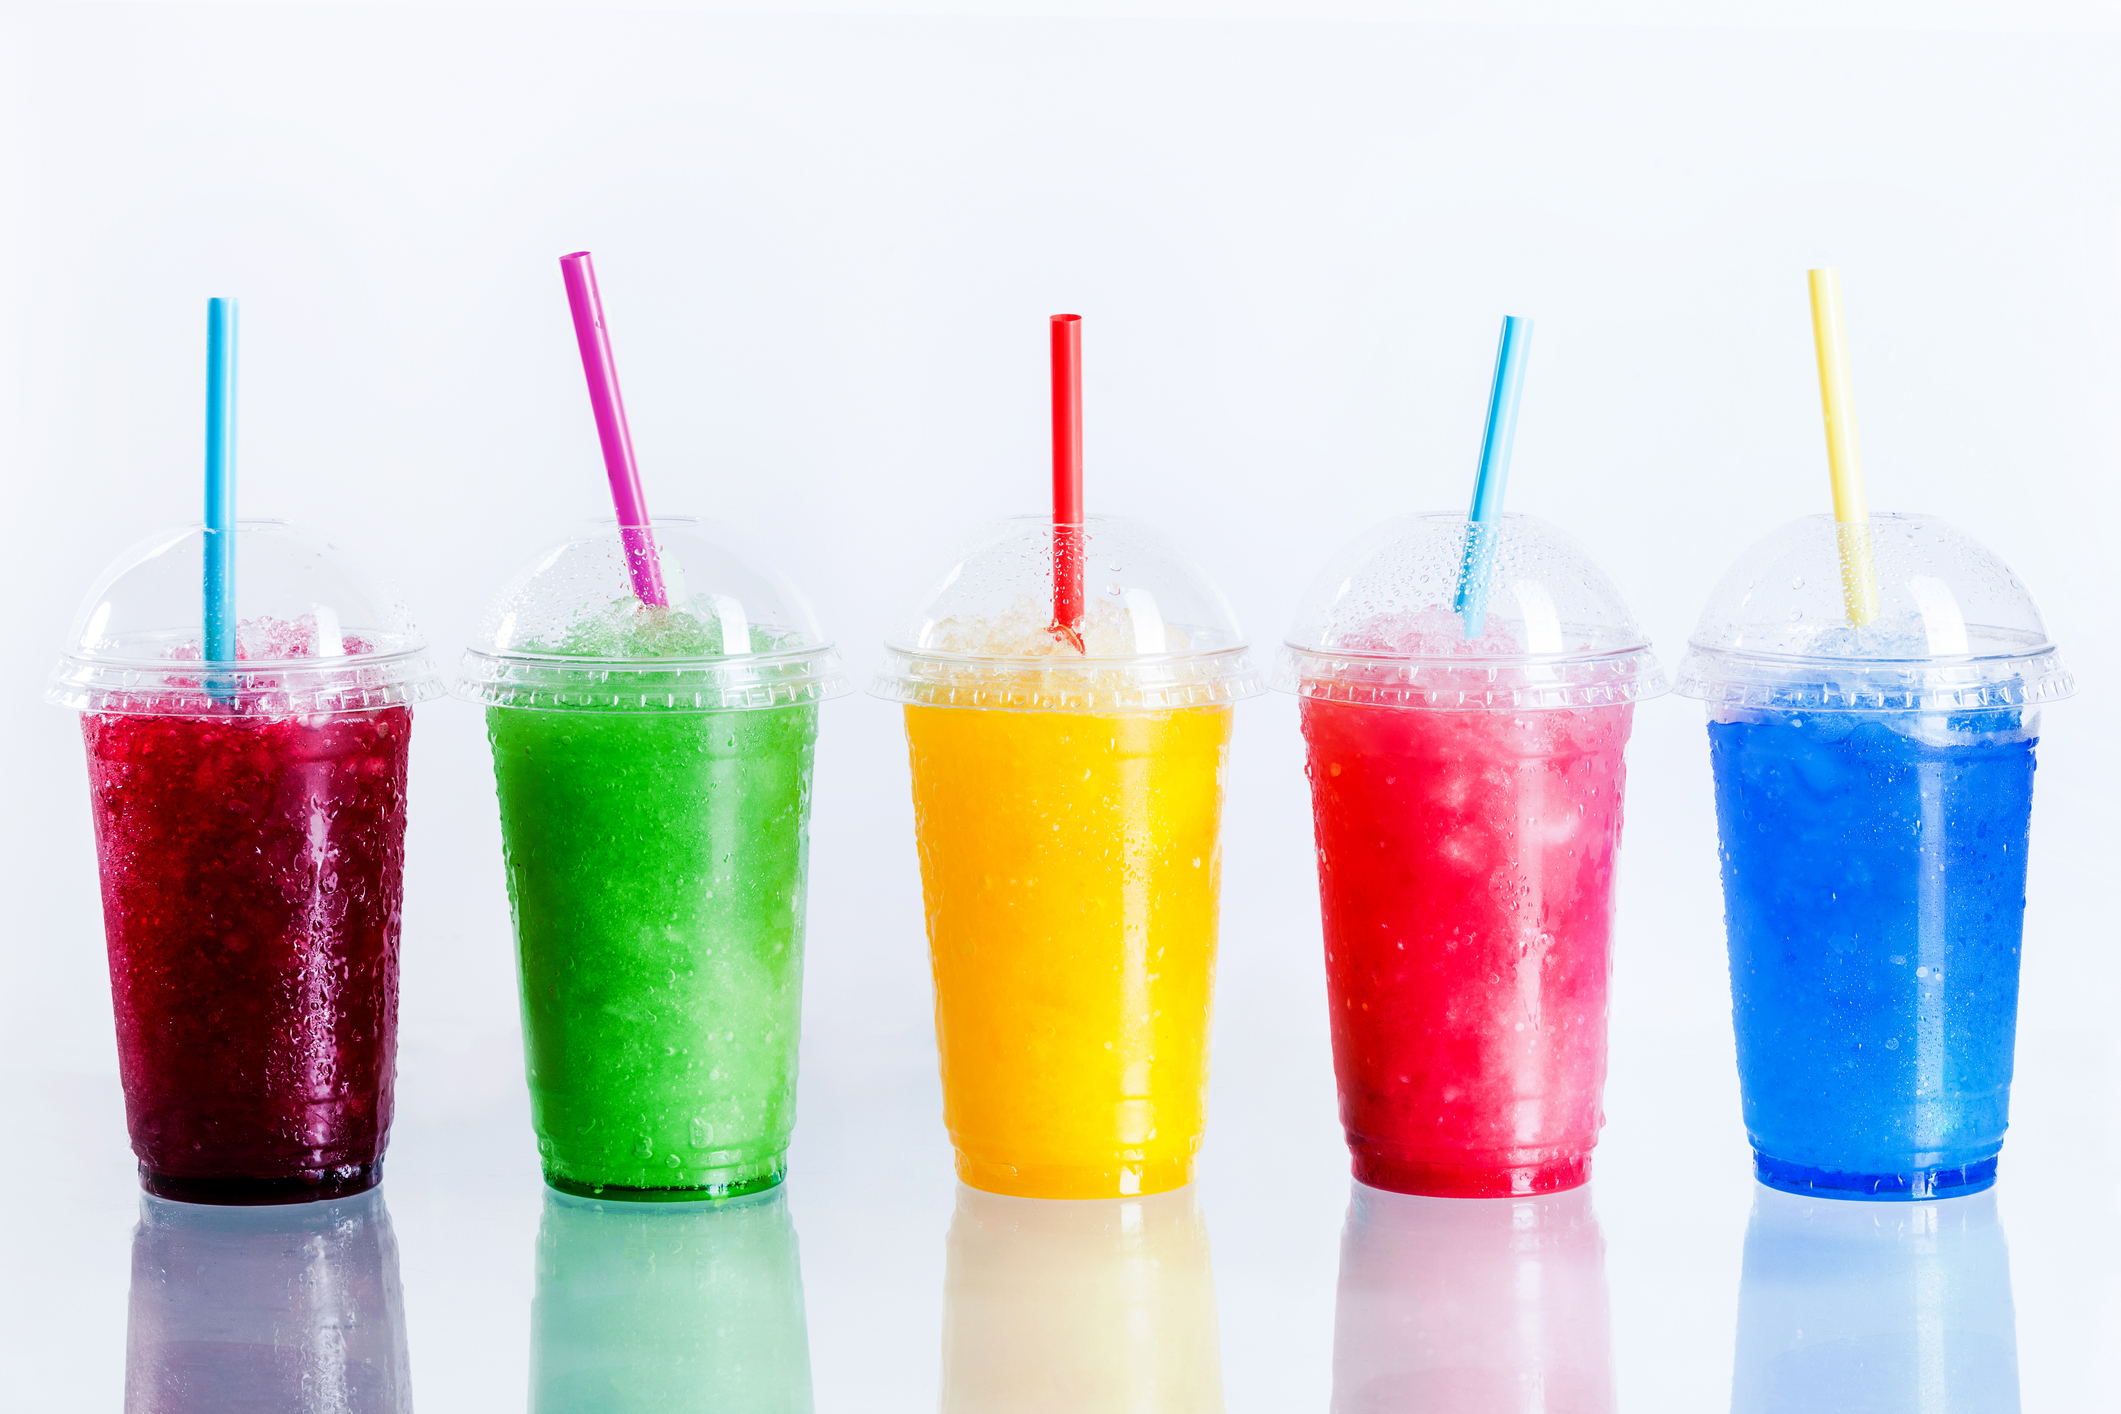 row-of-frozen-fruit-slushies-in-plastic-cups-69367710